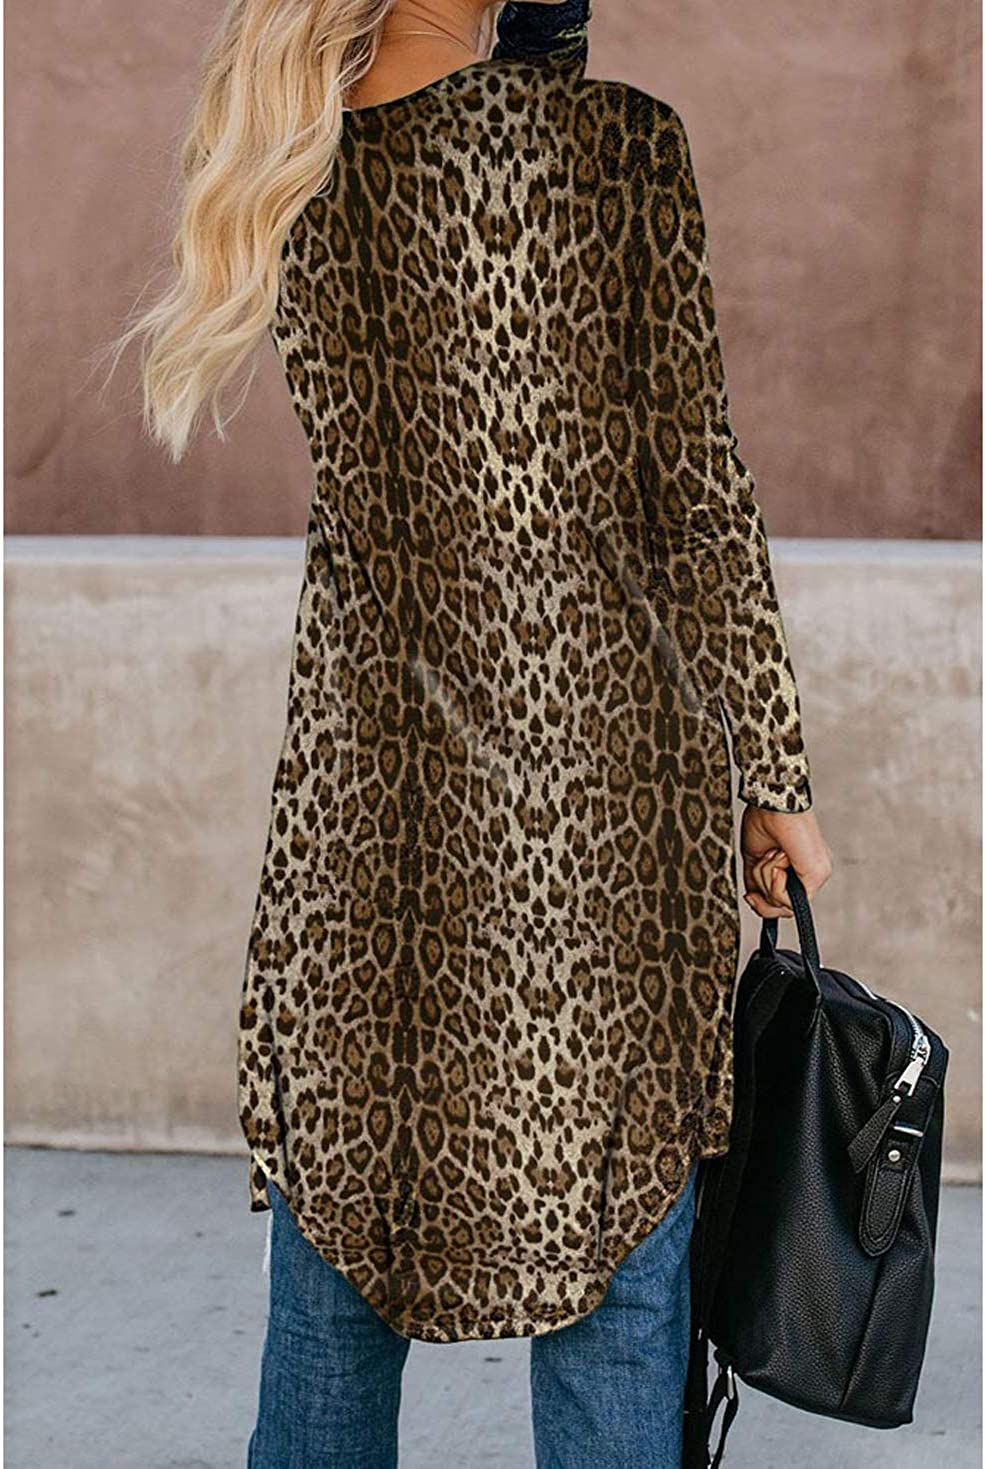 EISHOW Women Casual Loose Cardigan Tops Leopard Print Long Sleeve Outwear Open Front Trench Camouflage Cardigans Coats